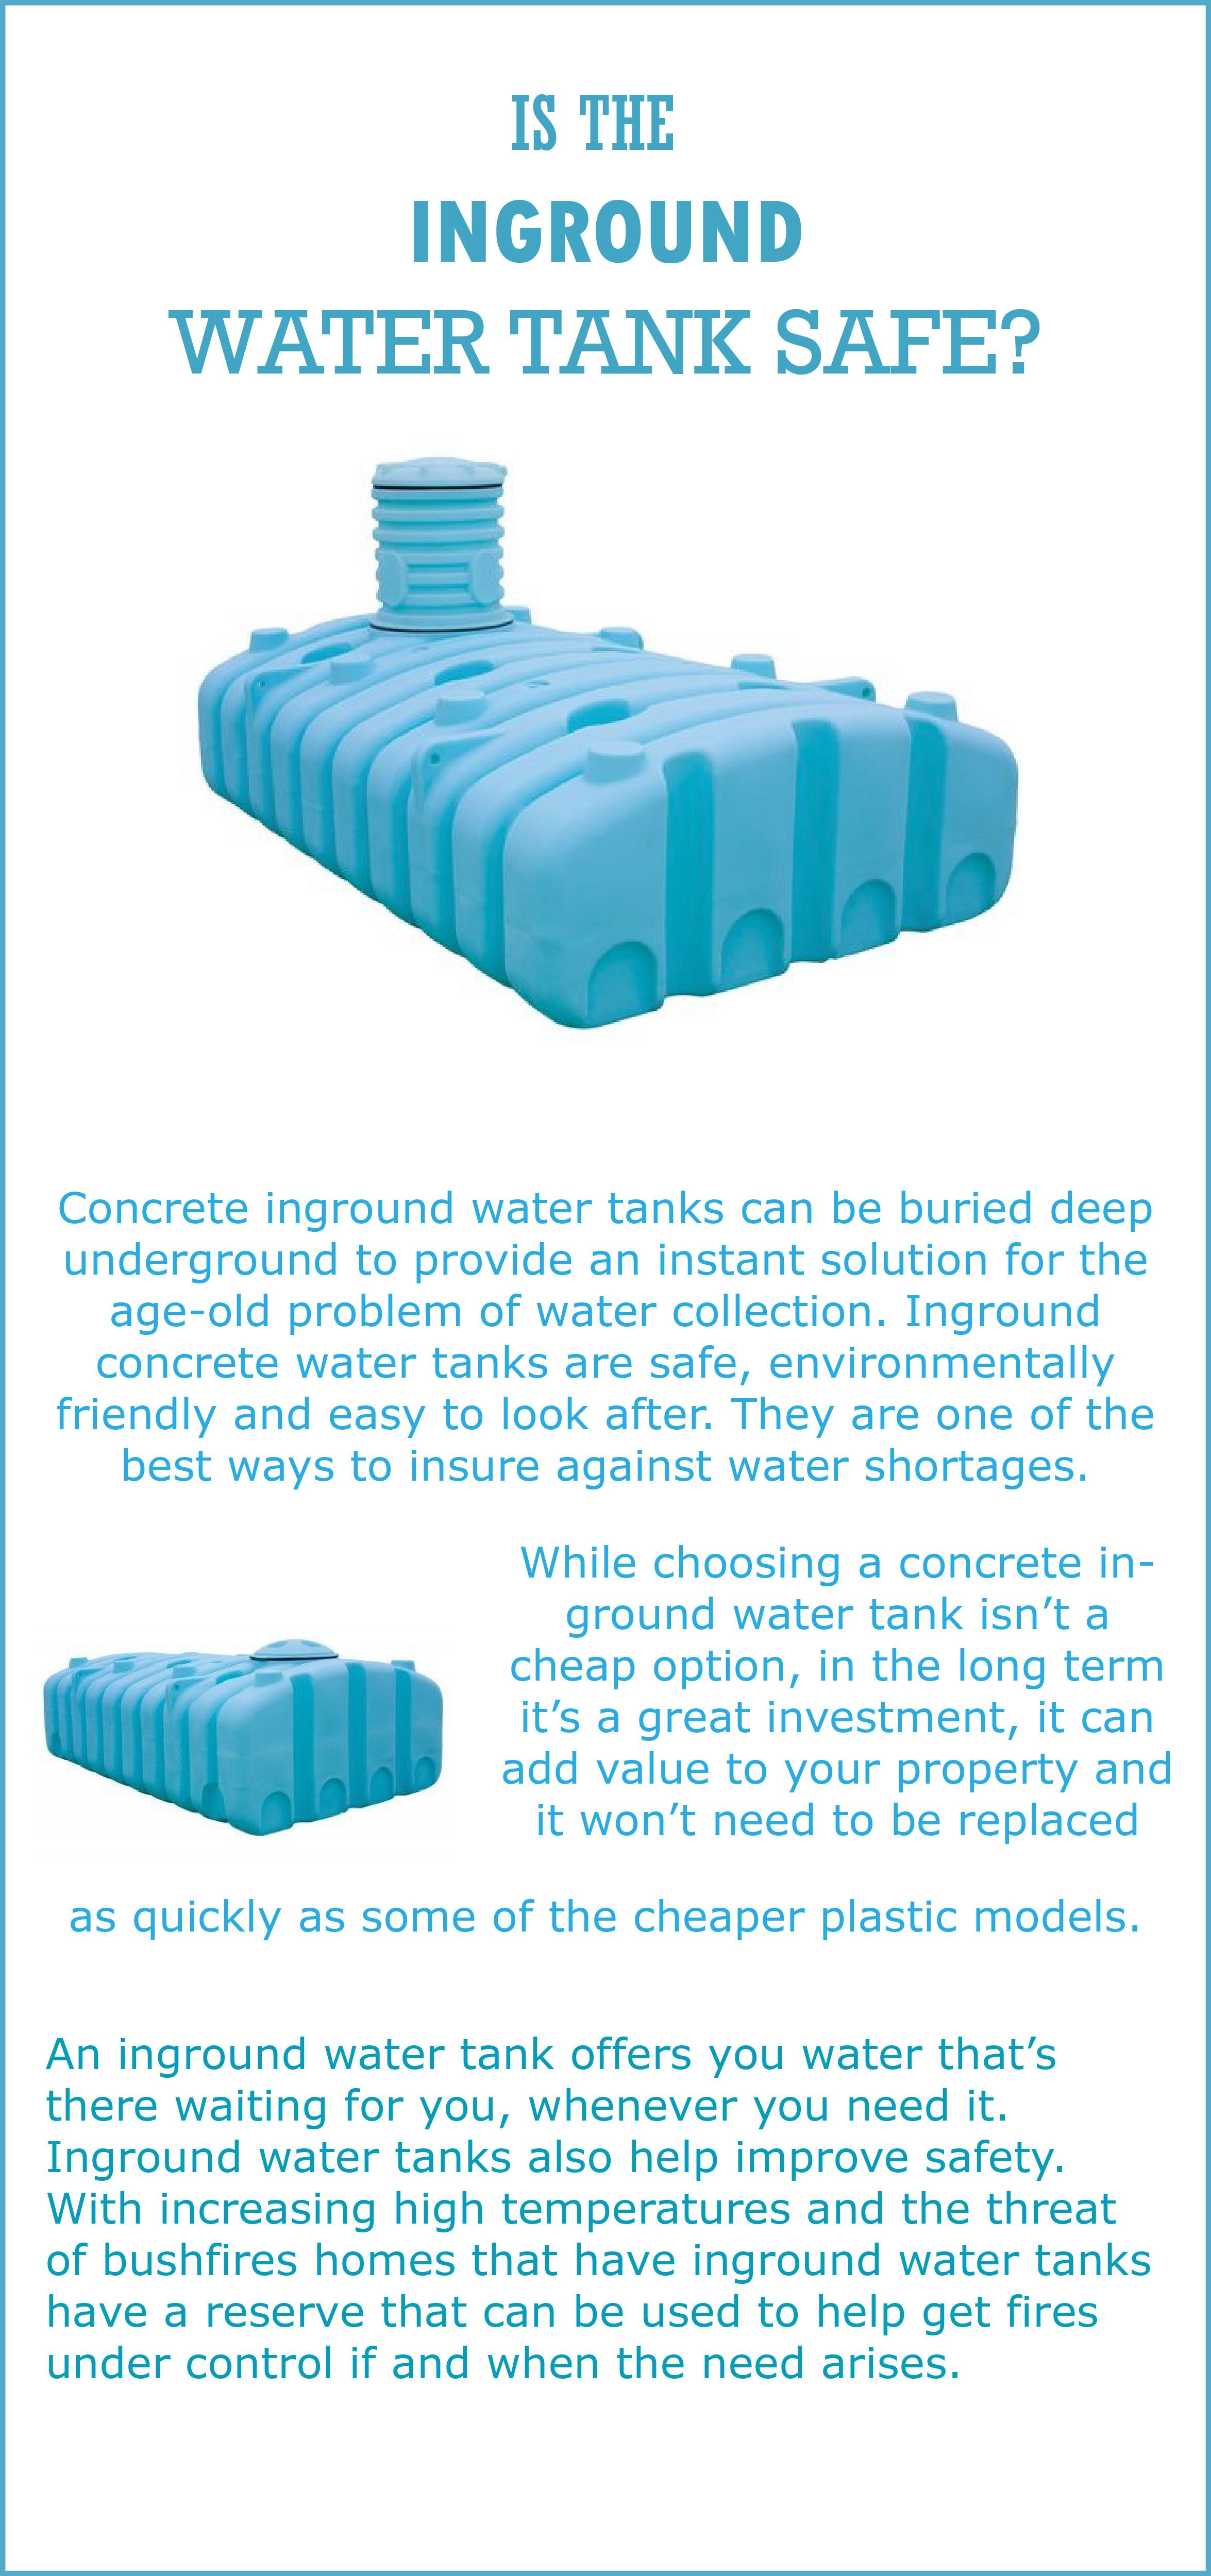 The in ground water tanks are designed for below ground use only